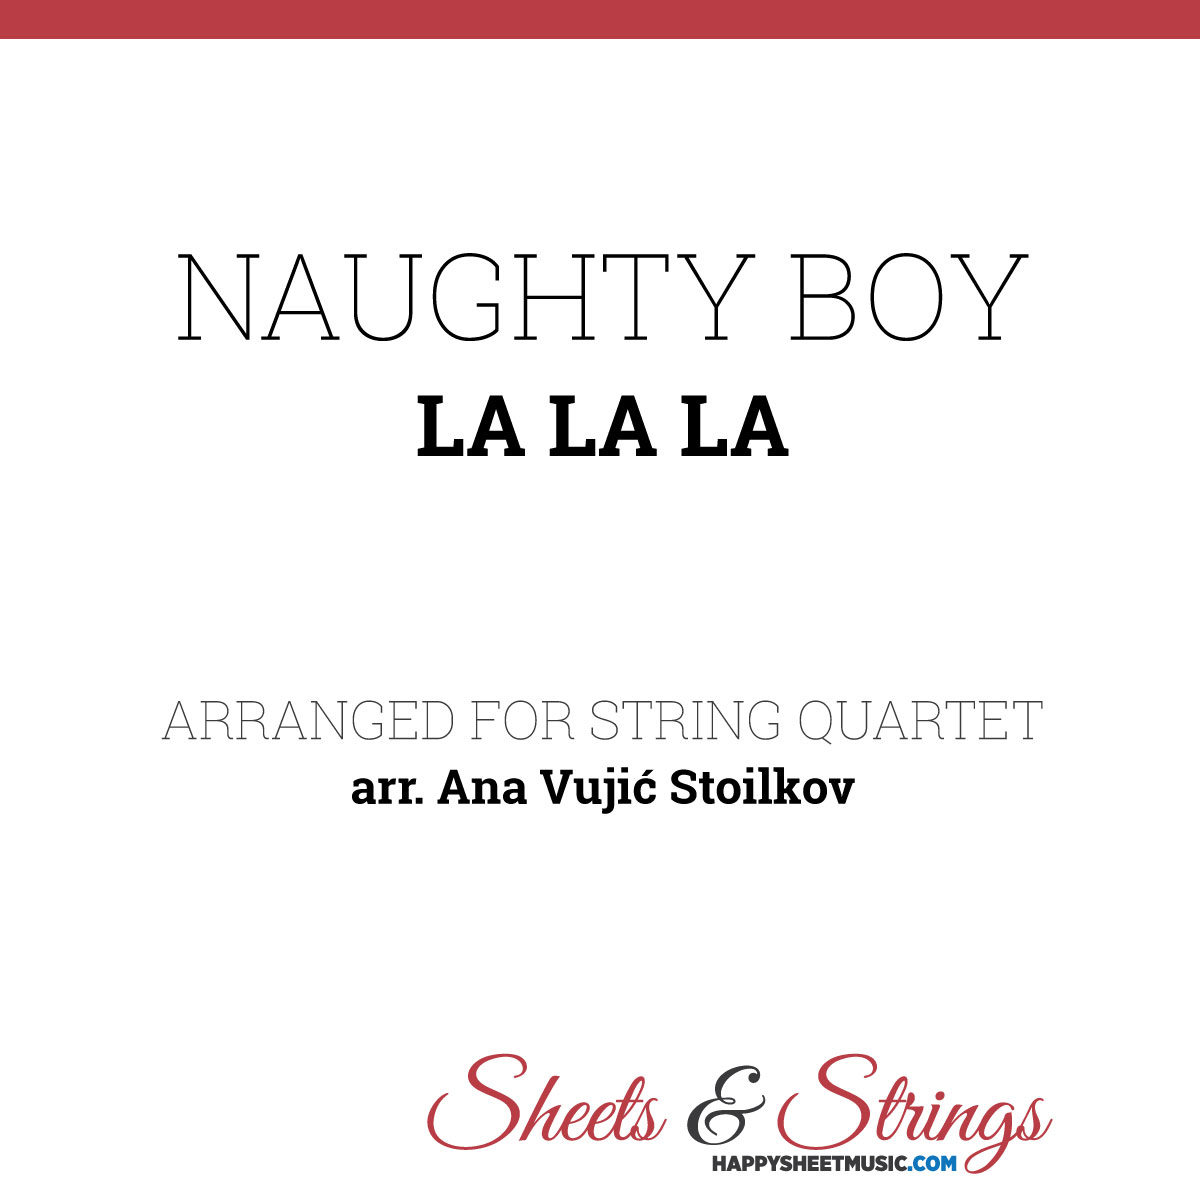 Naughty Boy La La La Sheet Music for String Quartet - Violin Sheet Music - Viola Sheet Music - Cello Sheet Music